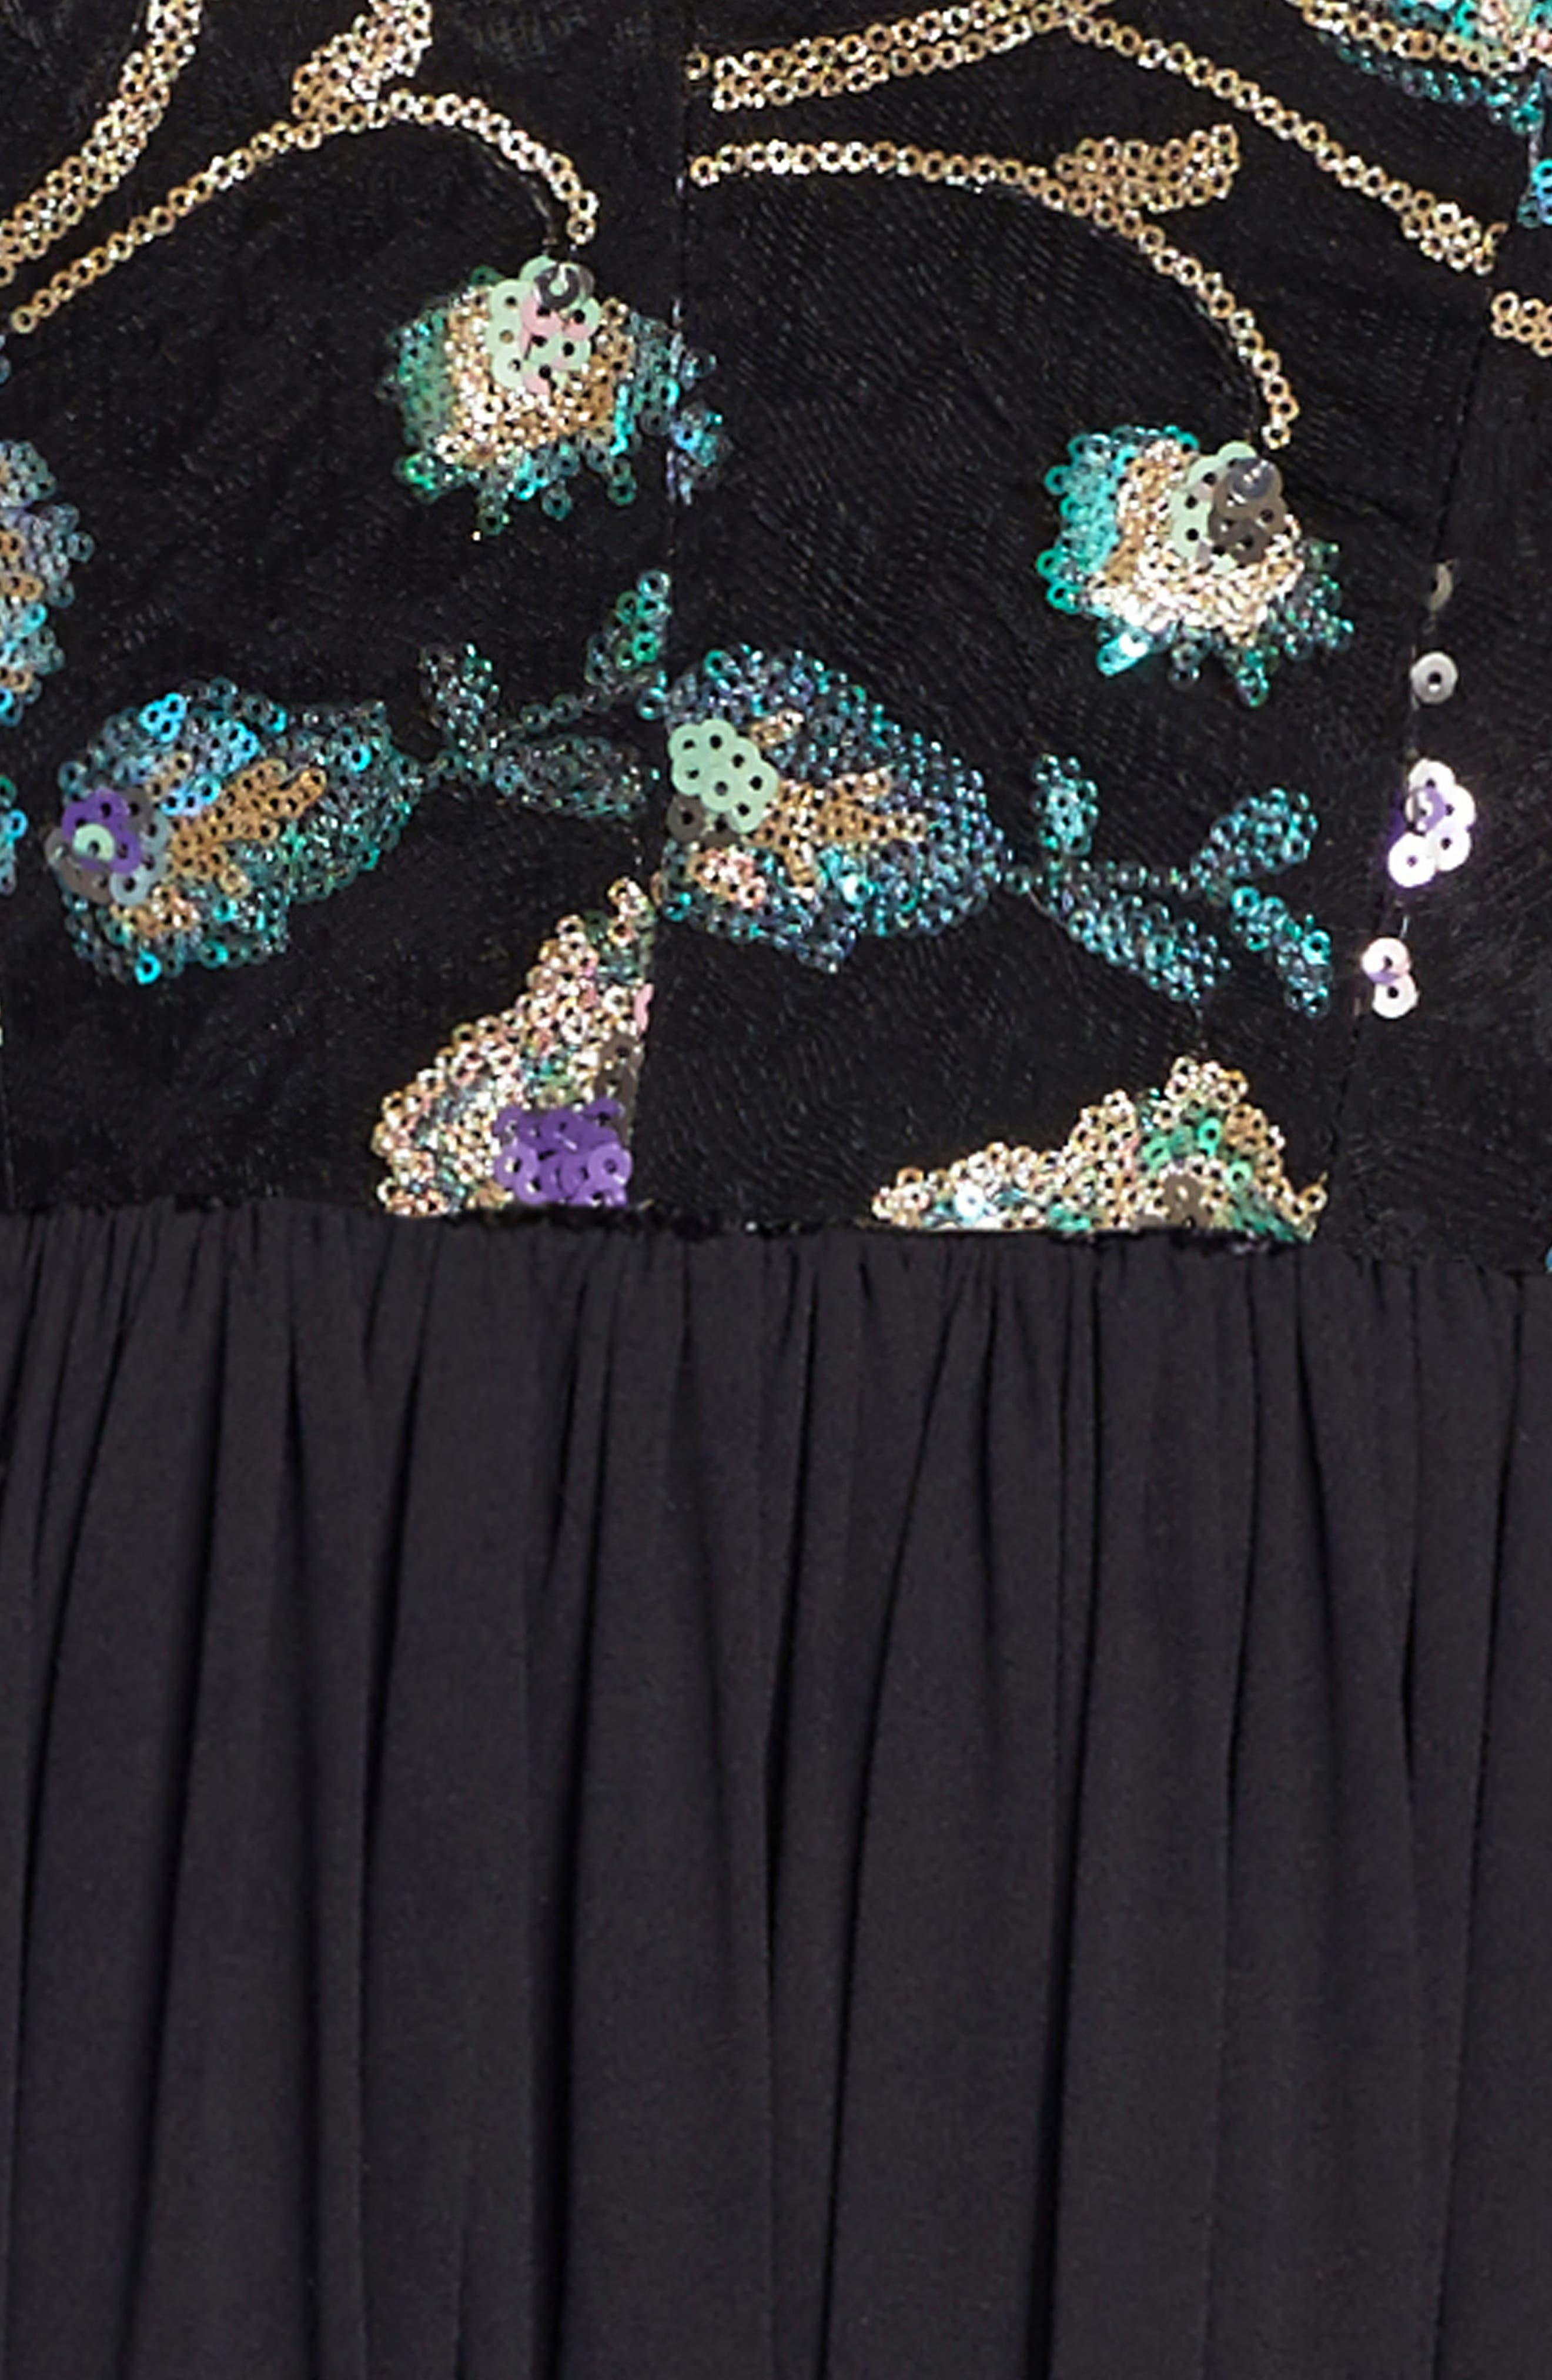 Adriana Sequin Bodice Gown,                             Alternate thumbnail 4, color,                             Black/ Iridescent Floral